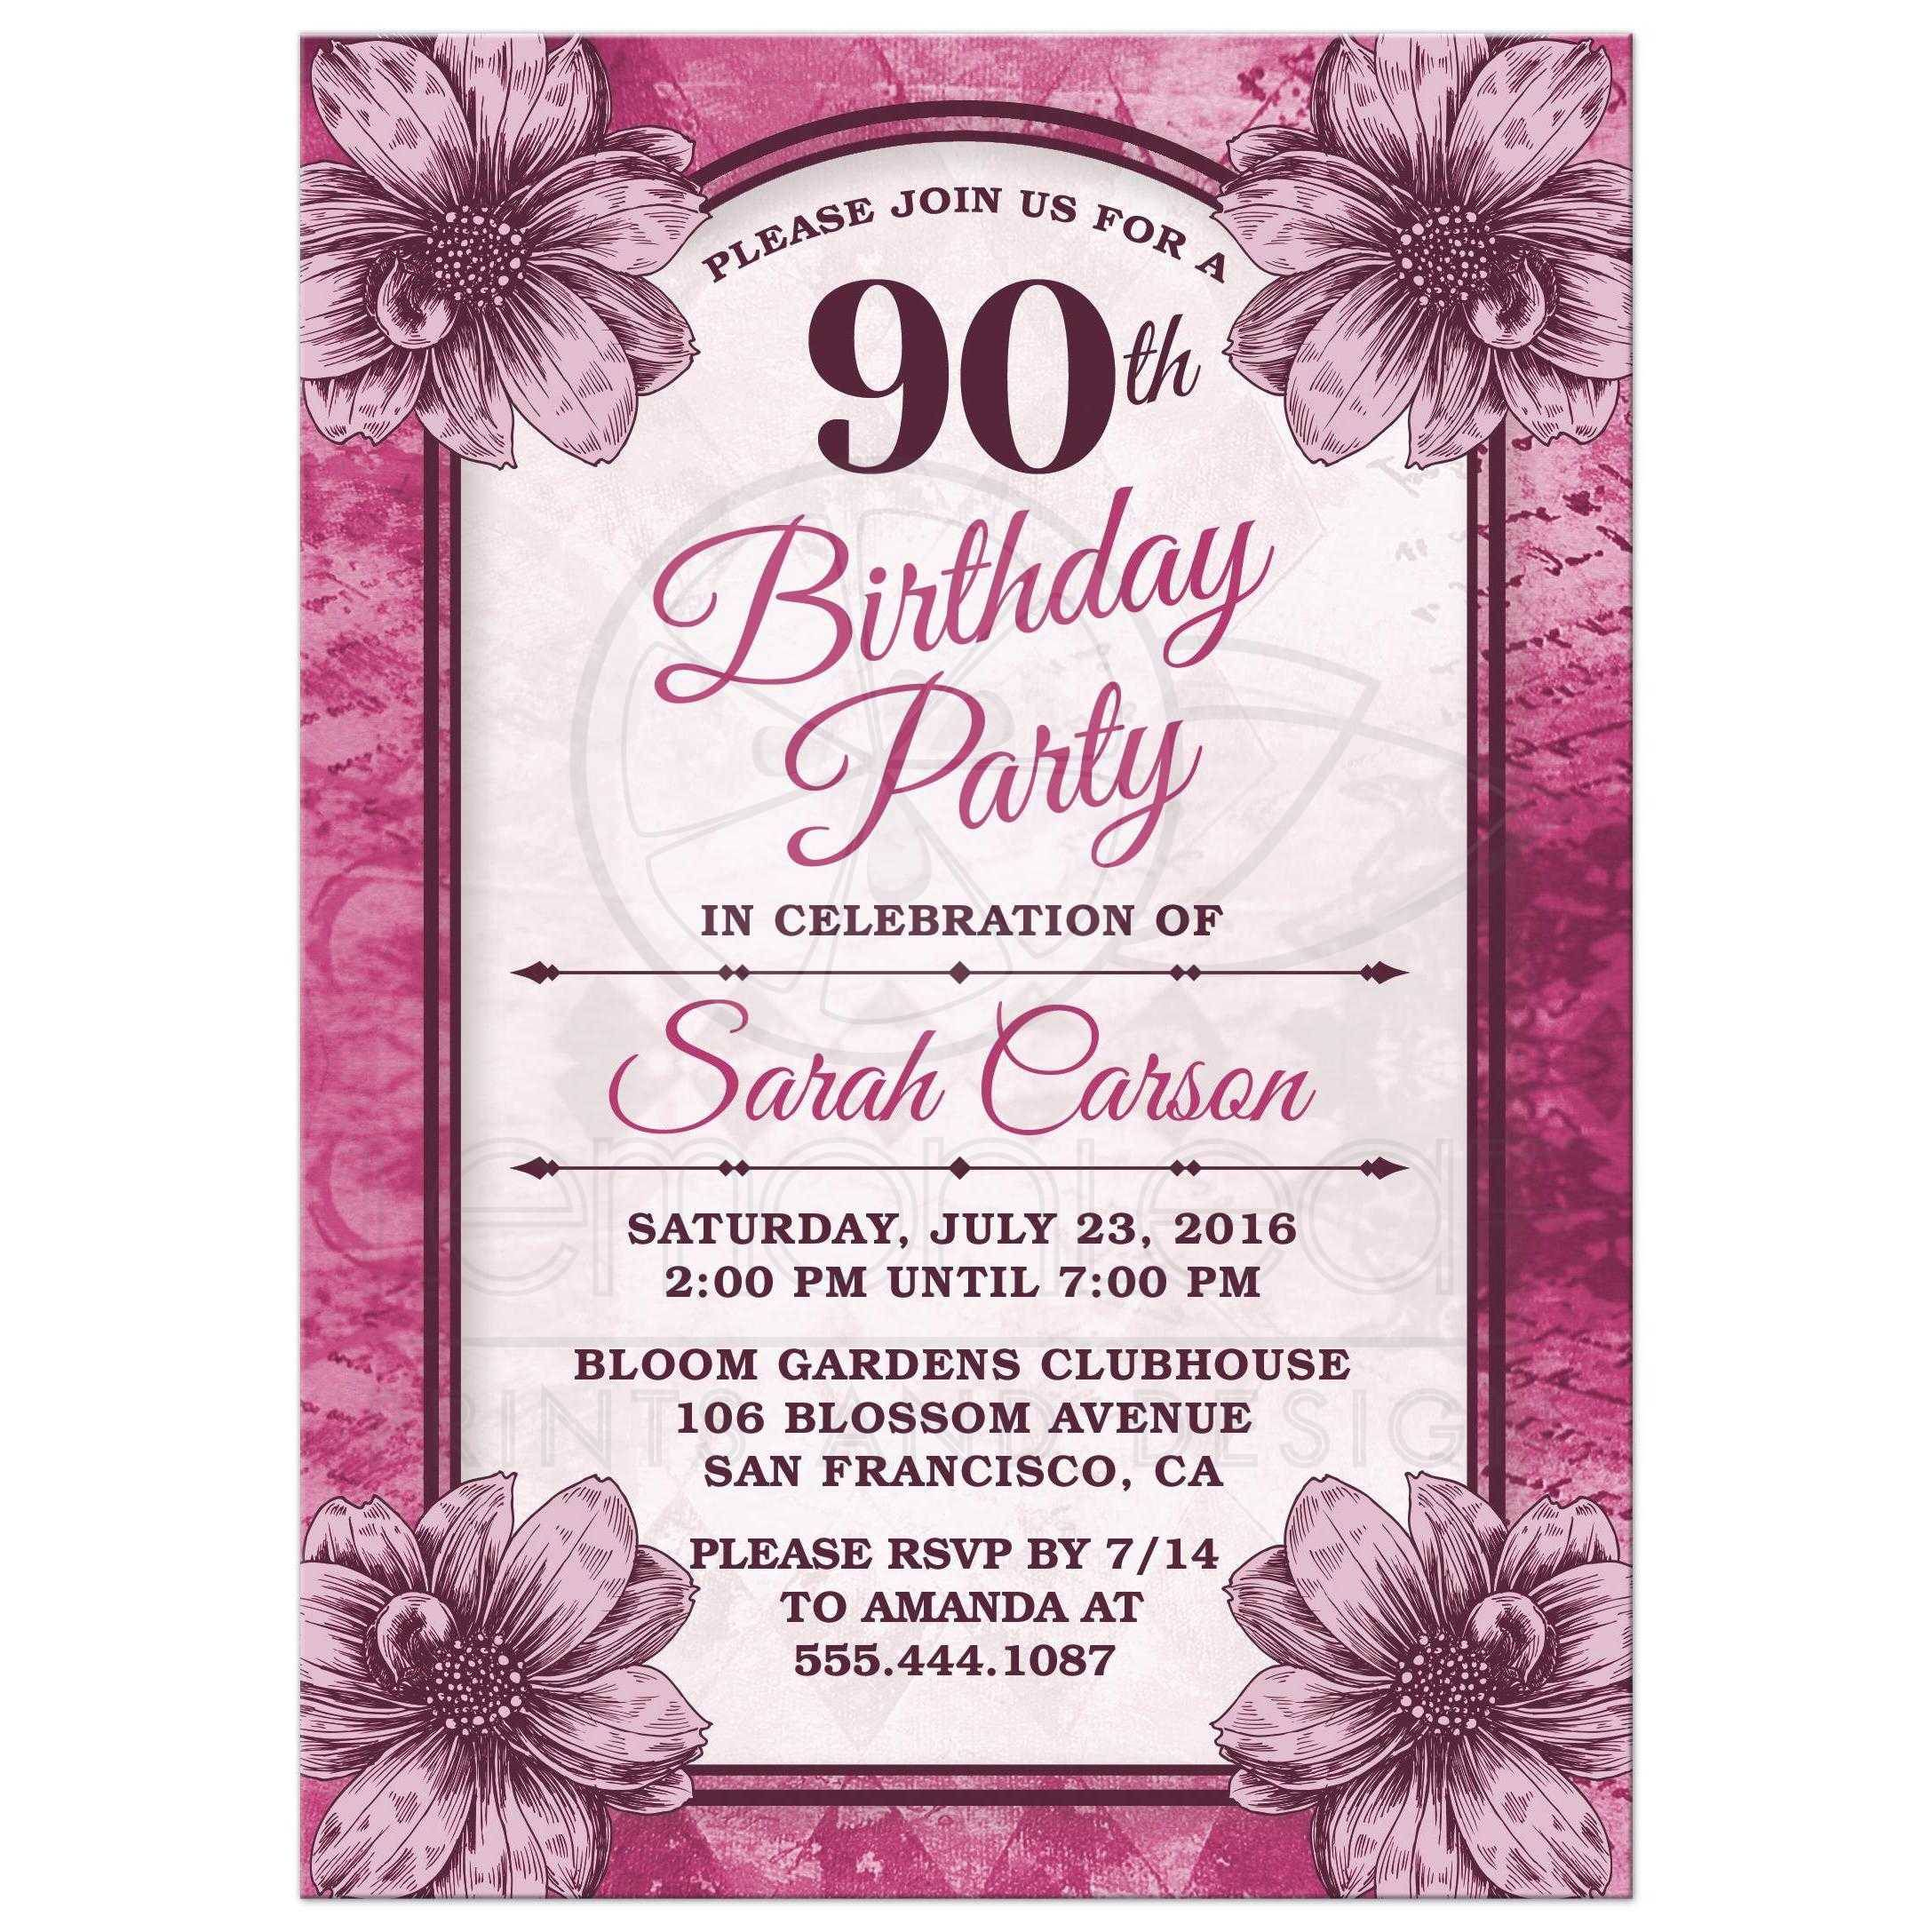 90th Birthday Party Invitations Templates Free | Party ...